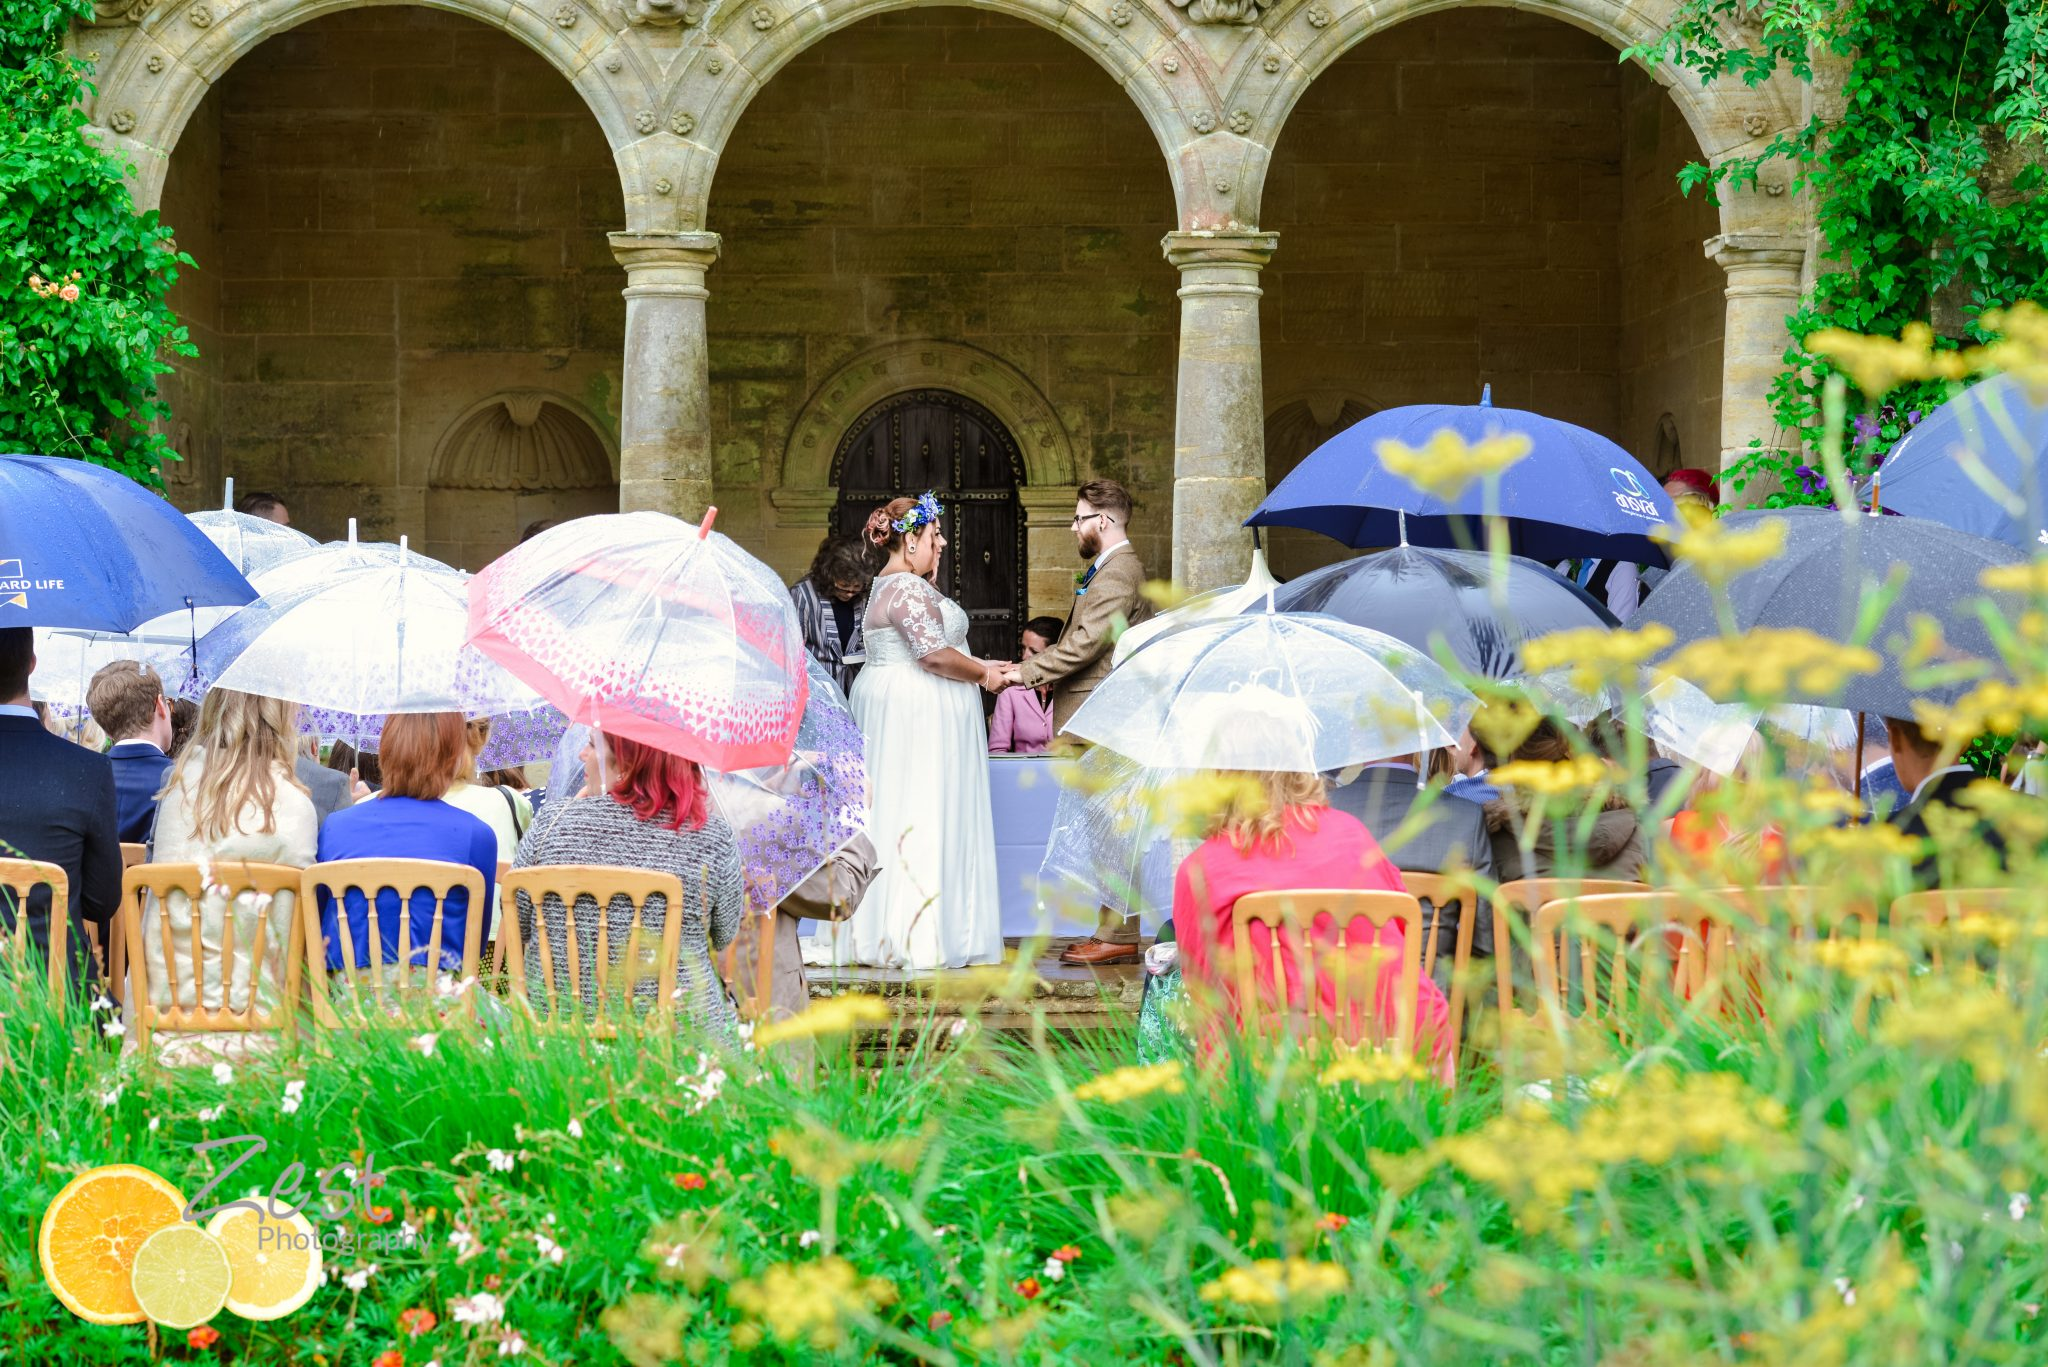 outdoor ceremony in the rain at nymans gardens